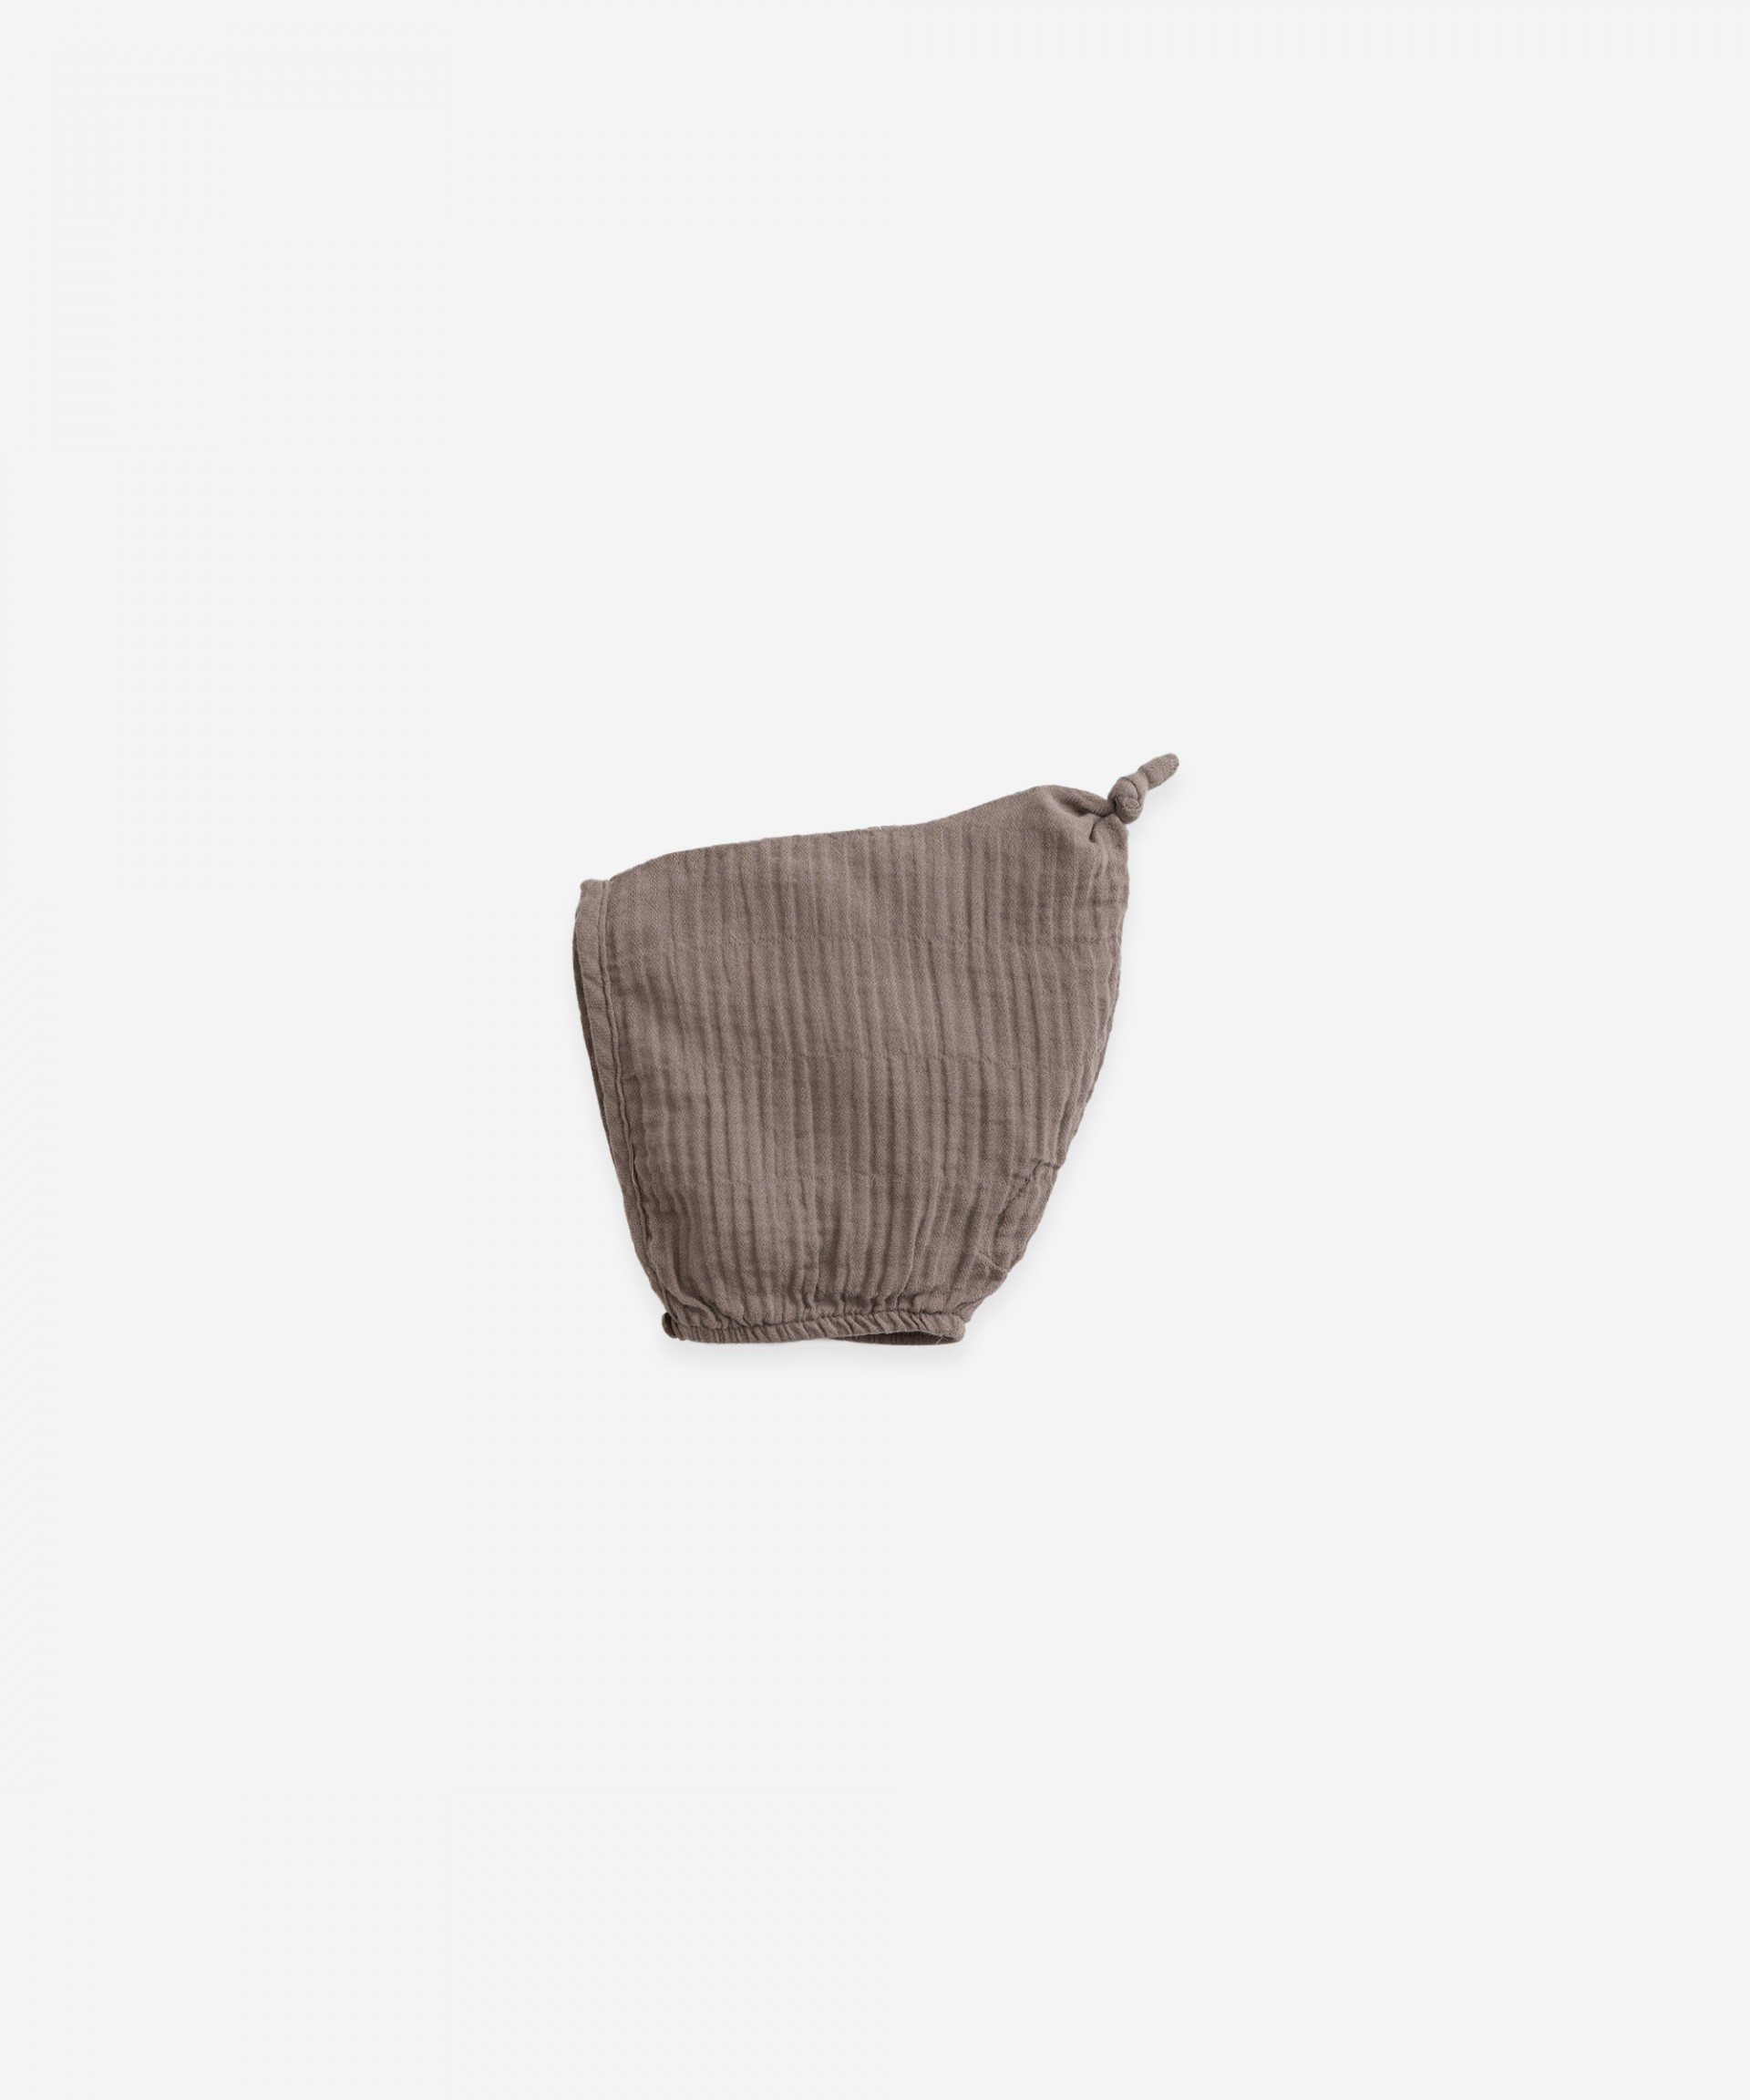 Woven beanie with a button | Botany